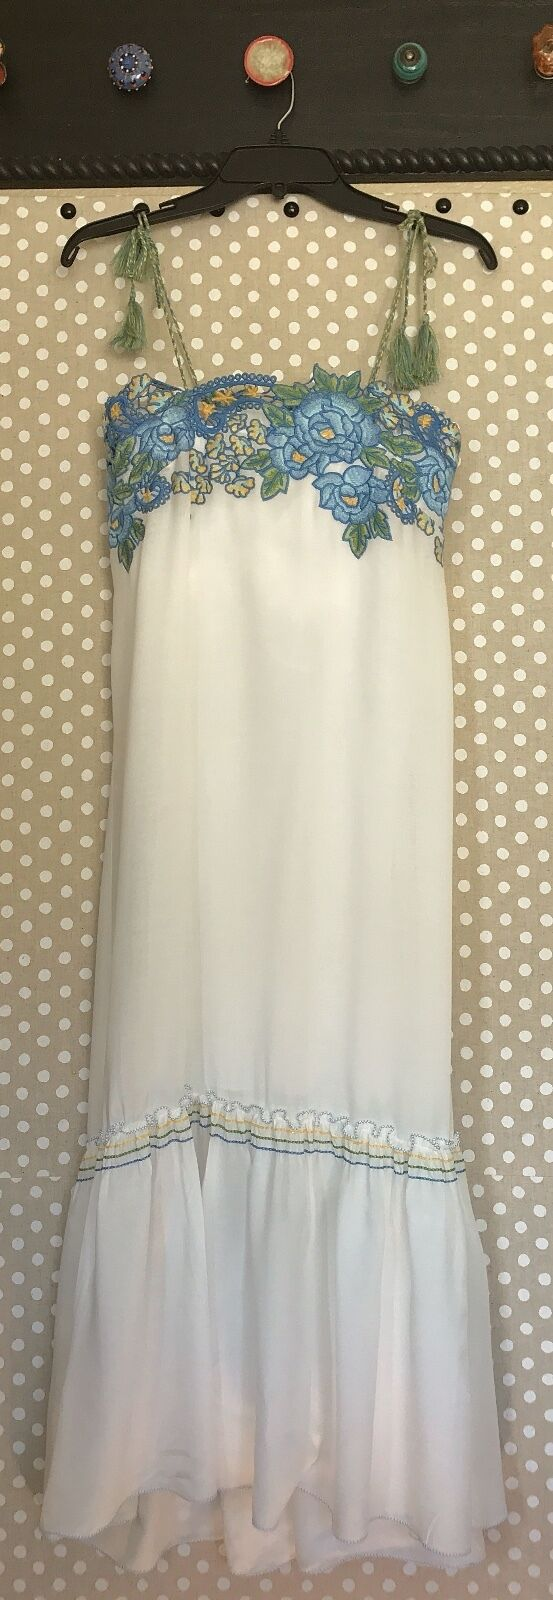 NWT Anthropologie Chelsea and lila loose fit Maxi Dress retails for 158.00 S